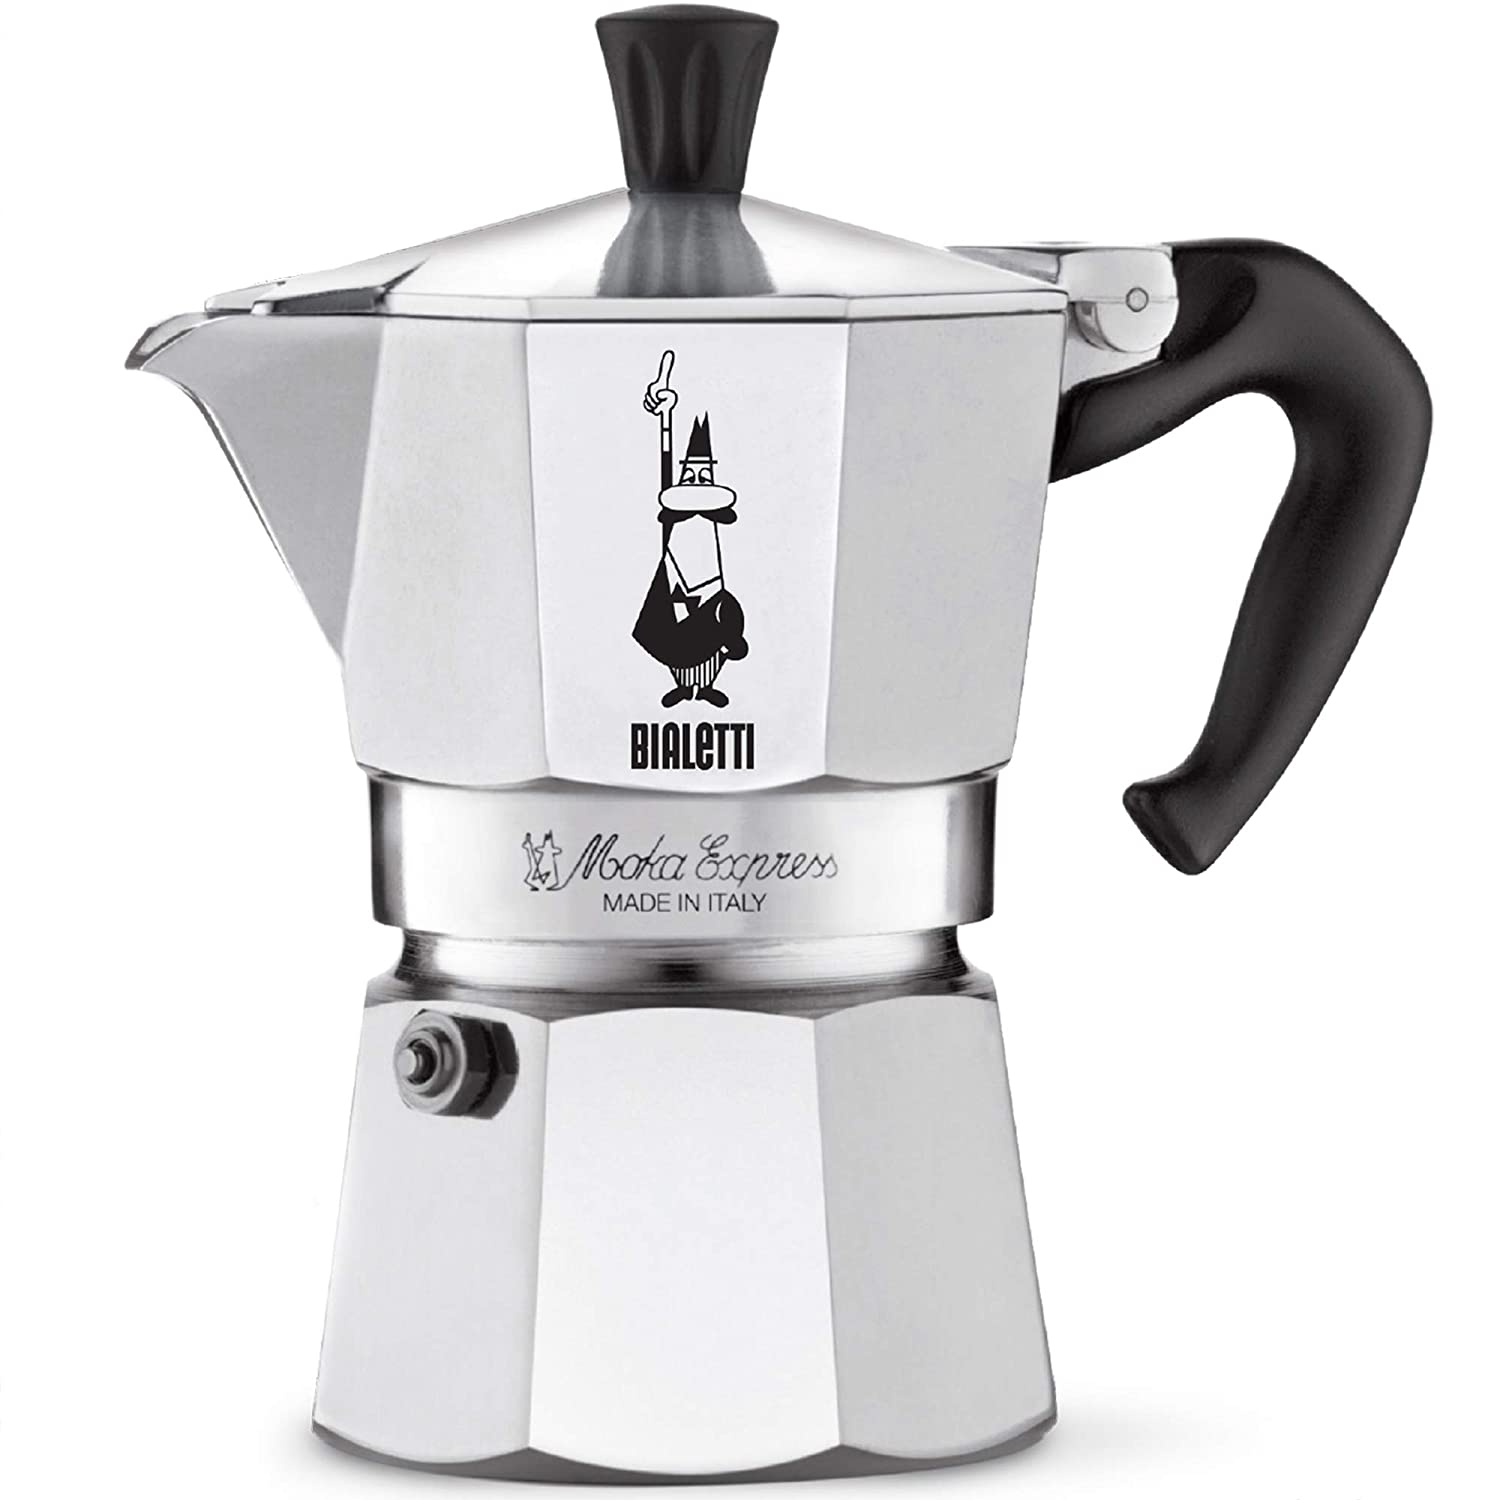 The With Express Ounces Safety Valve – Stovetop Maker Brews Moka 4 Bialetti Cup Original Coffee 4 3 vNnm08w